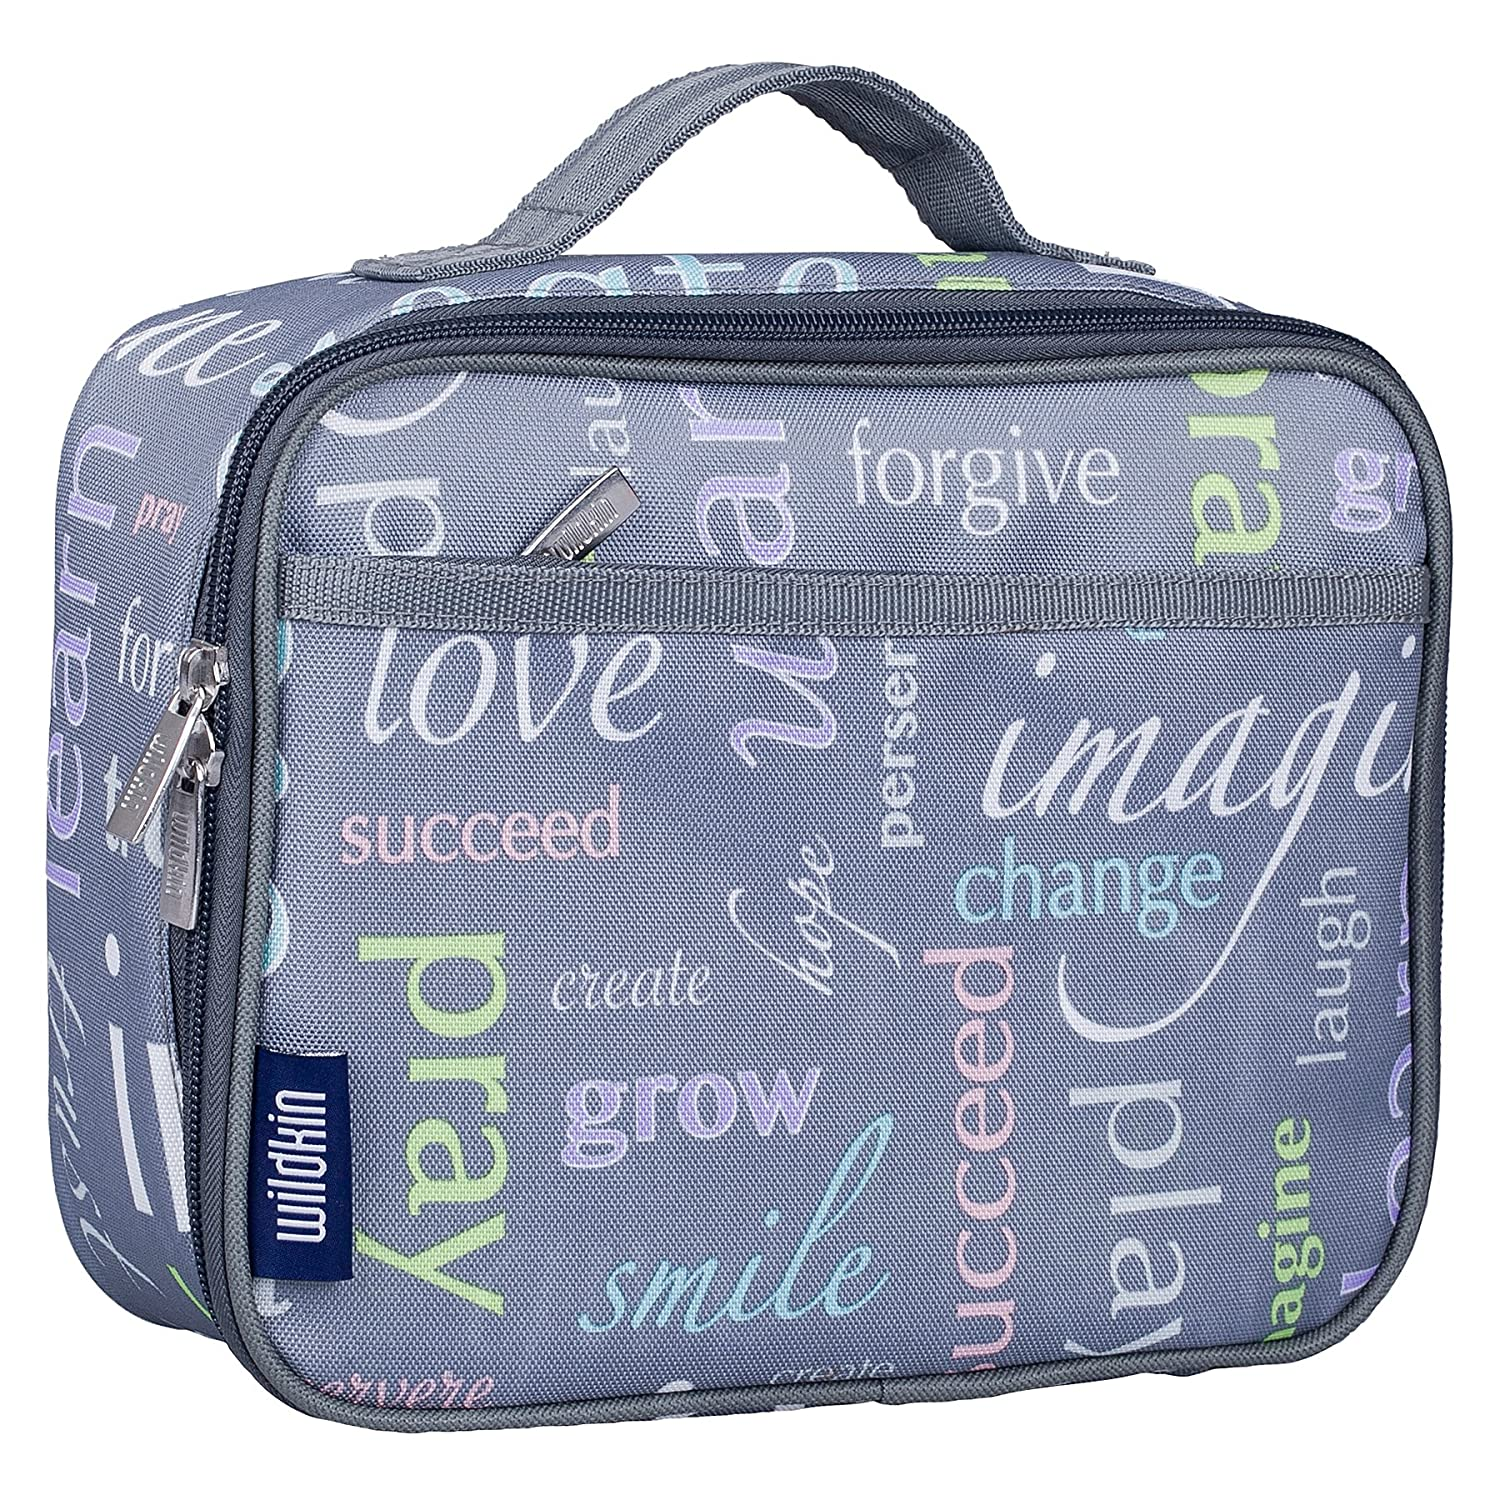 Lunch Box, Wildkin Lunch Box, Insulated, Moisture Resistant, and Easy to Clean with Helpful Extras for Quick and Simple Organization, Ages 3+, Perfect for Kids or On-The-Go Parents – Big Dot Aqua 33119